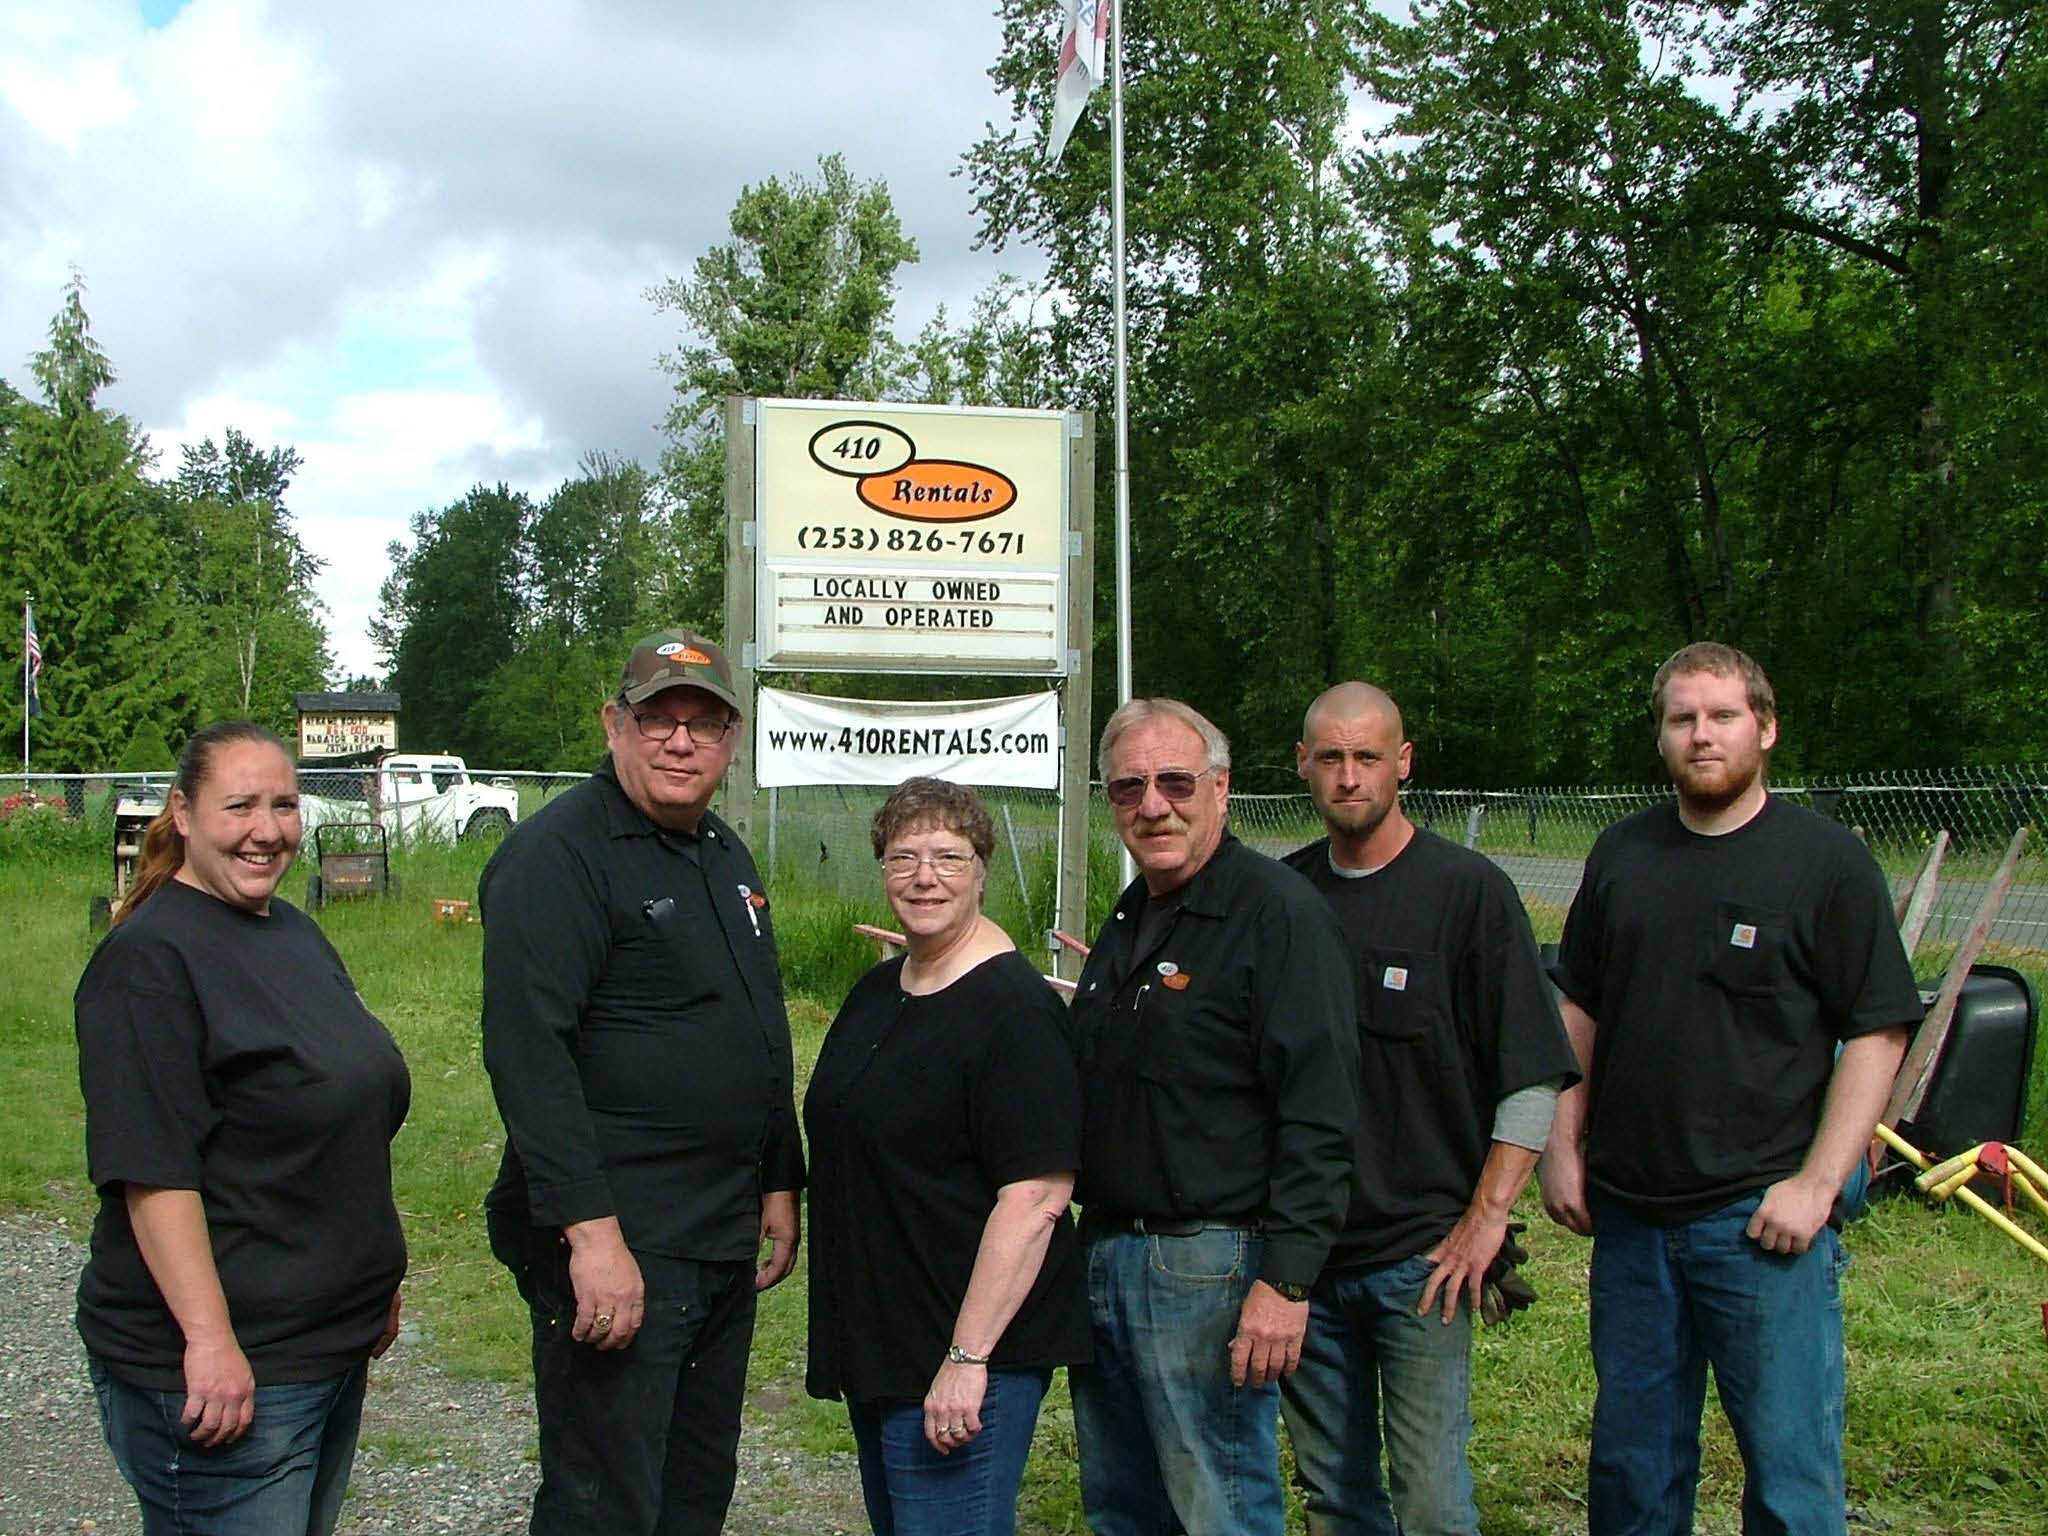 410 Rentals - Buckley, WA - owners and staff